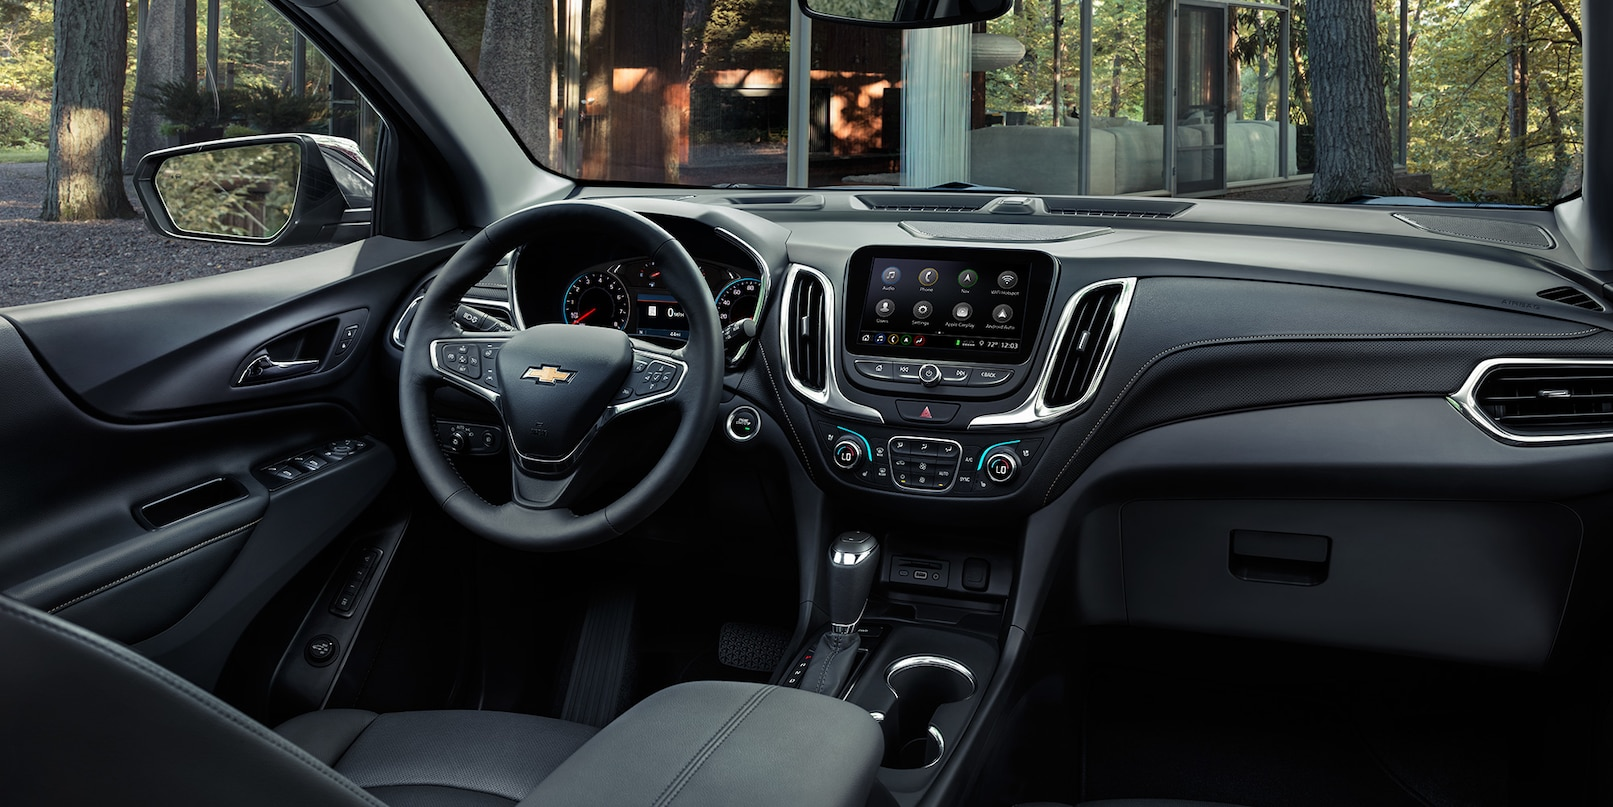 Get Comfortable in the 2019 Chevy Equinox